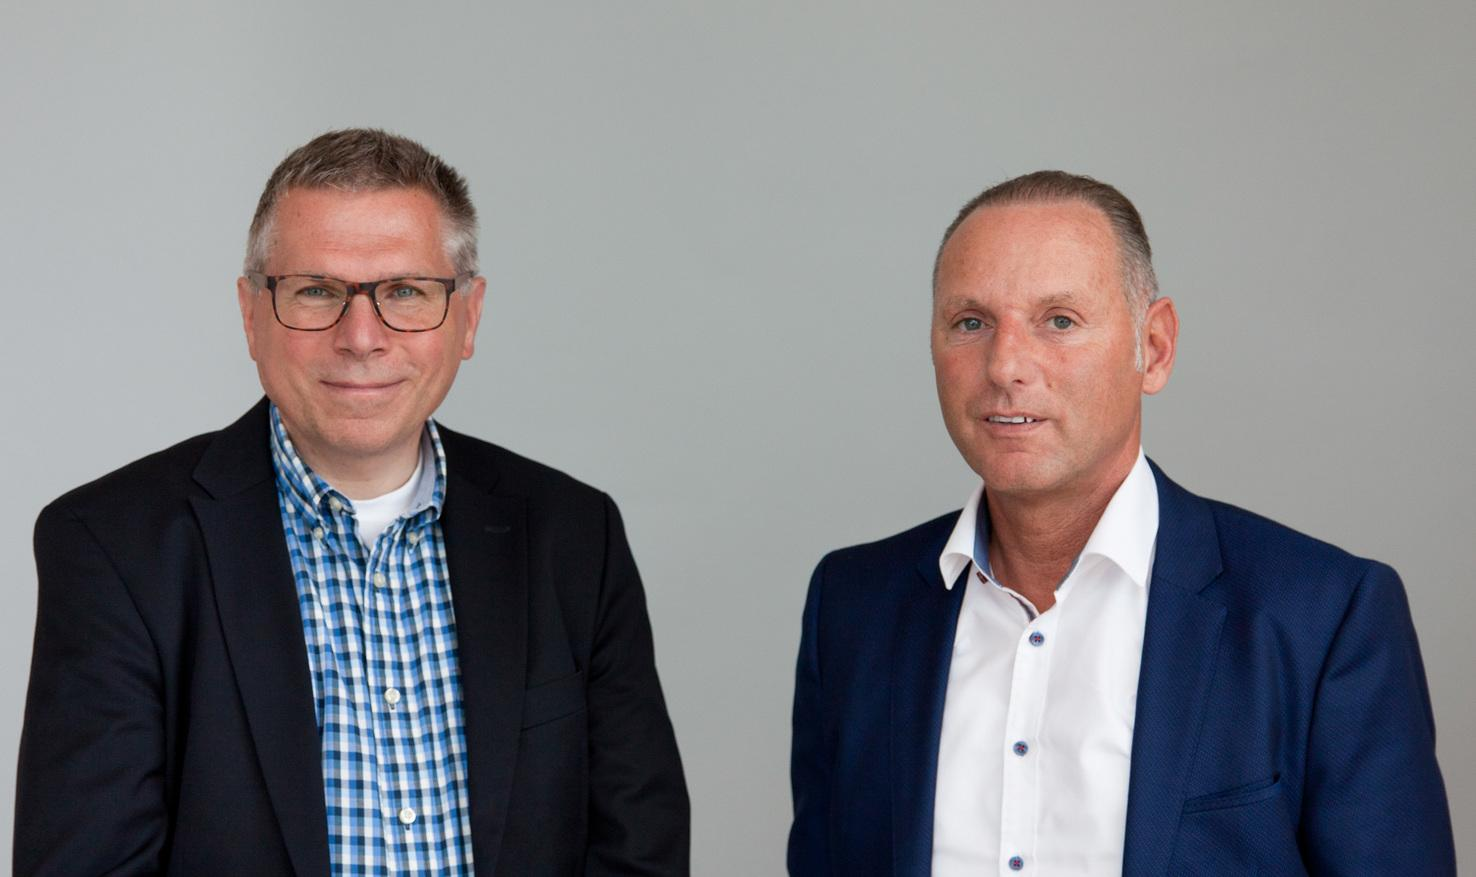 In new roles at AP&T: Director Business Development Per Josefsson and Chief Sales Officer Gerald Schulz.